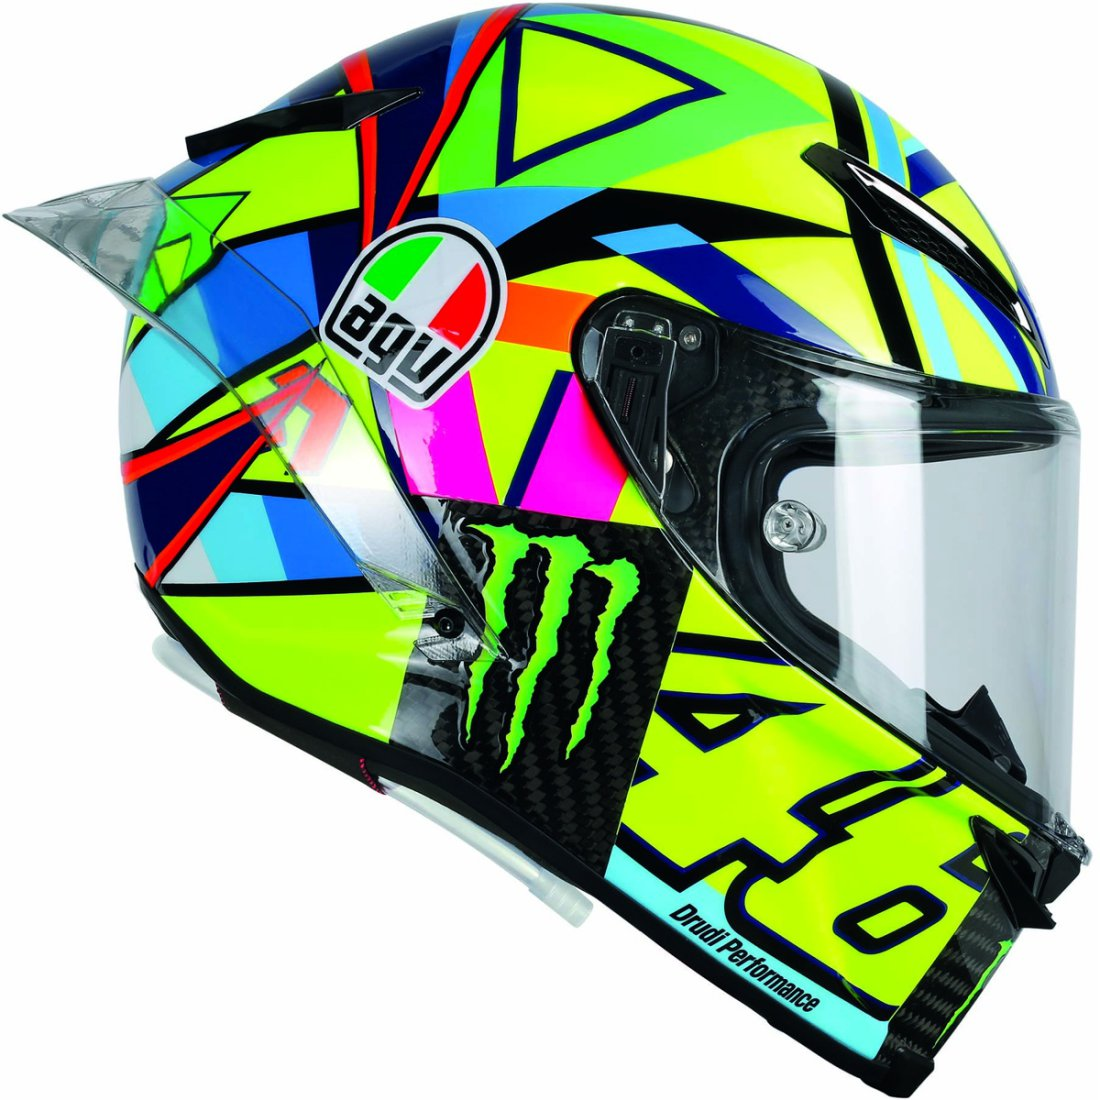 casque agv pista gp r rossi soleluna 2016 motocard. Black Bedroom Furniture Sets. Home Design Ideas